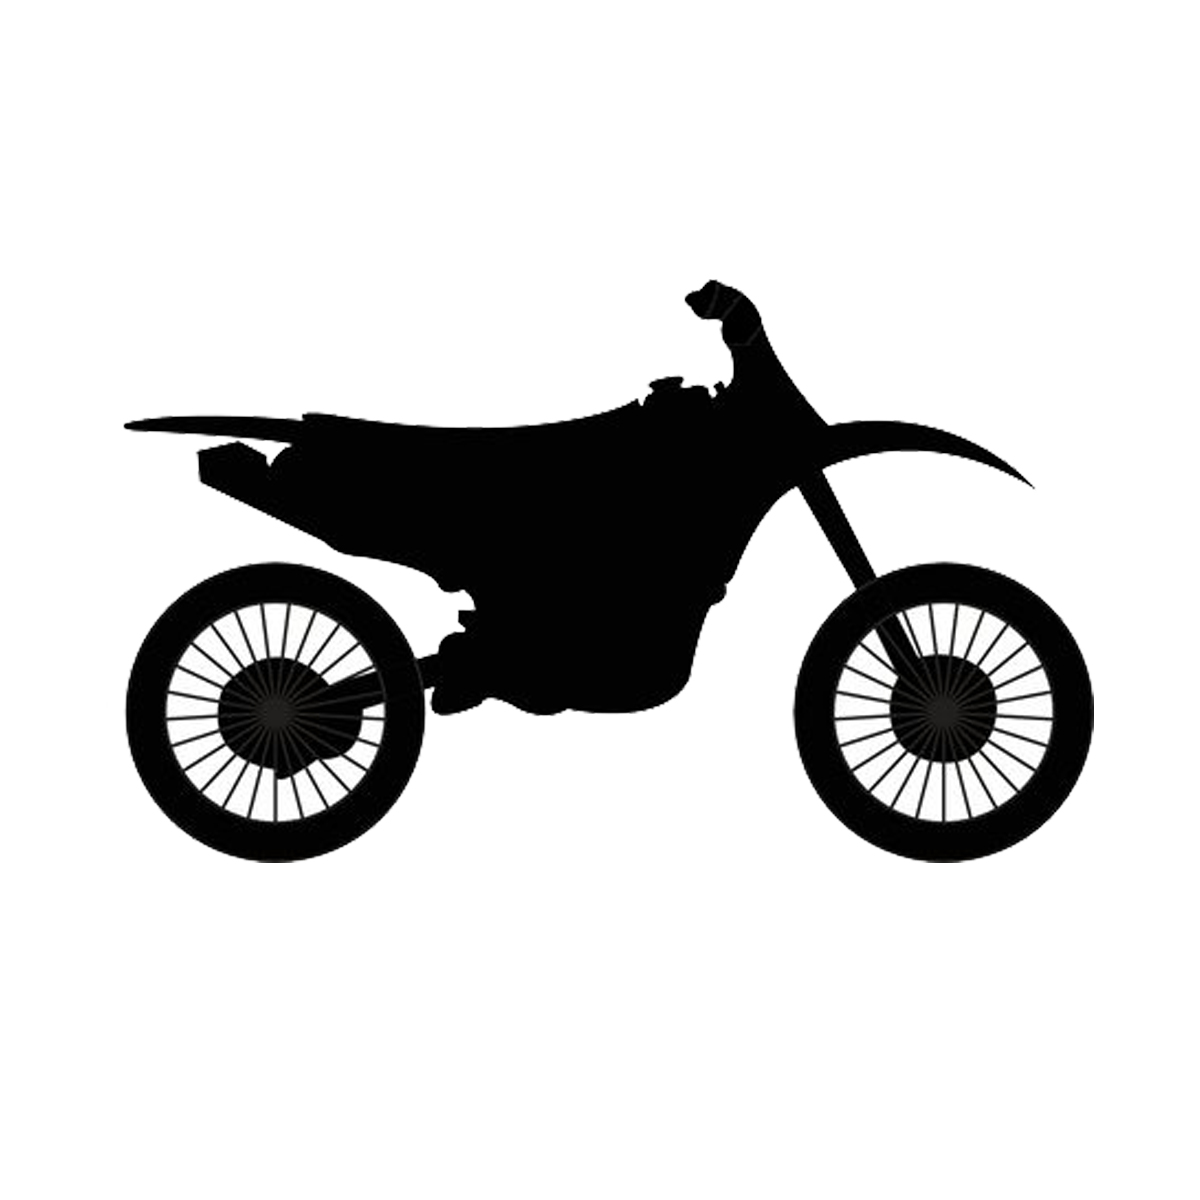 Insurance Quote For Motorcycle: Corwin-Rey Insurance Agency